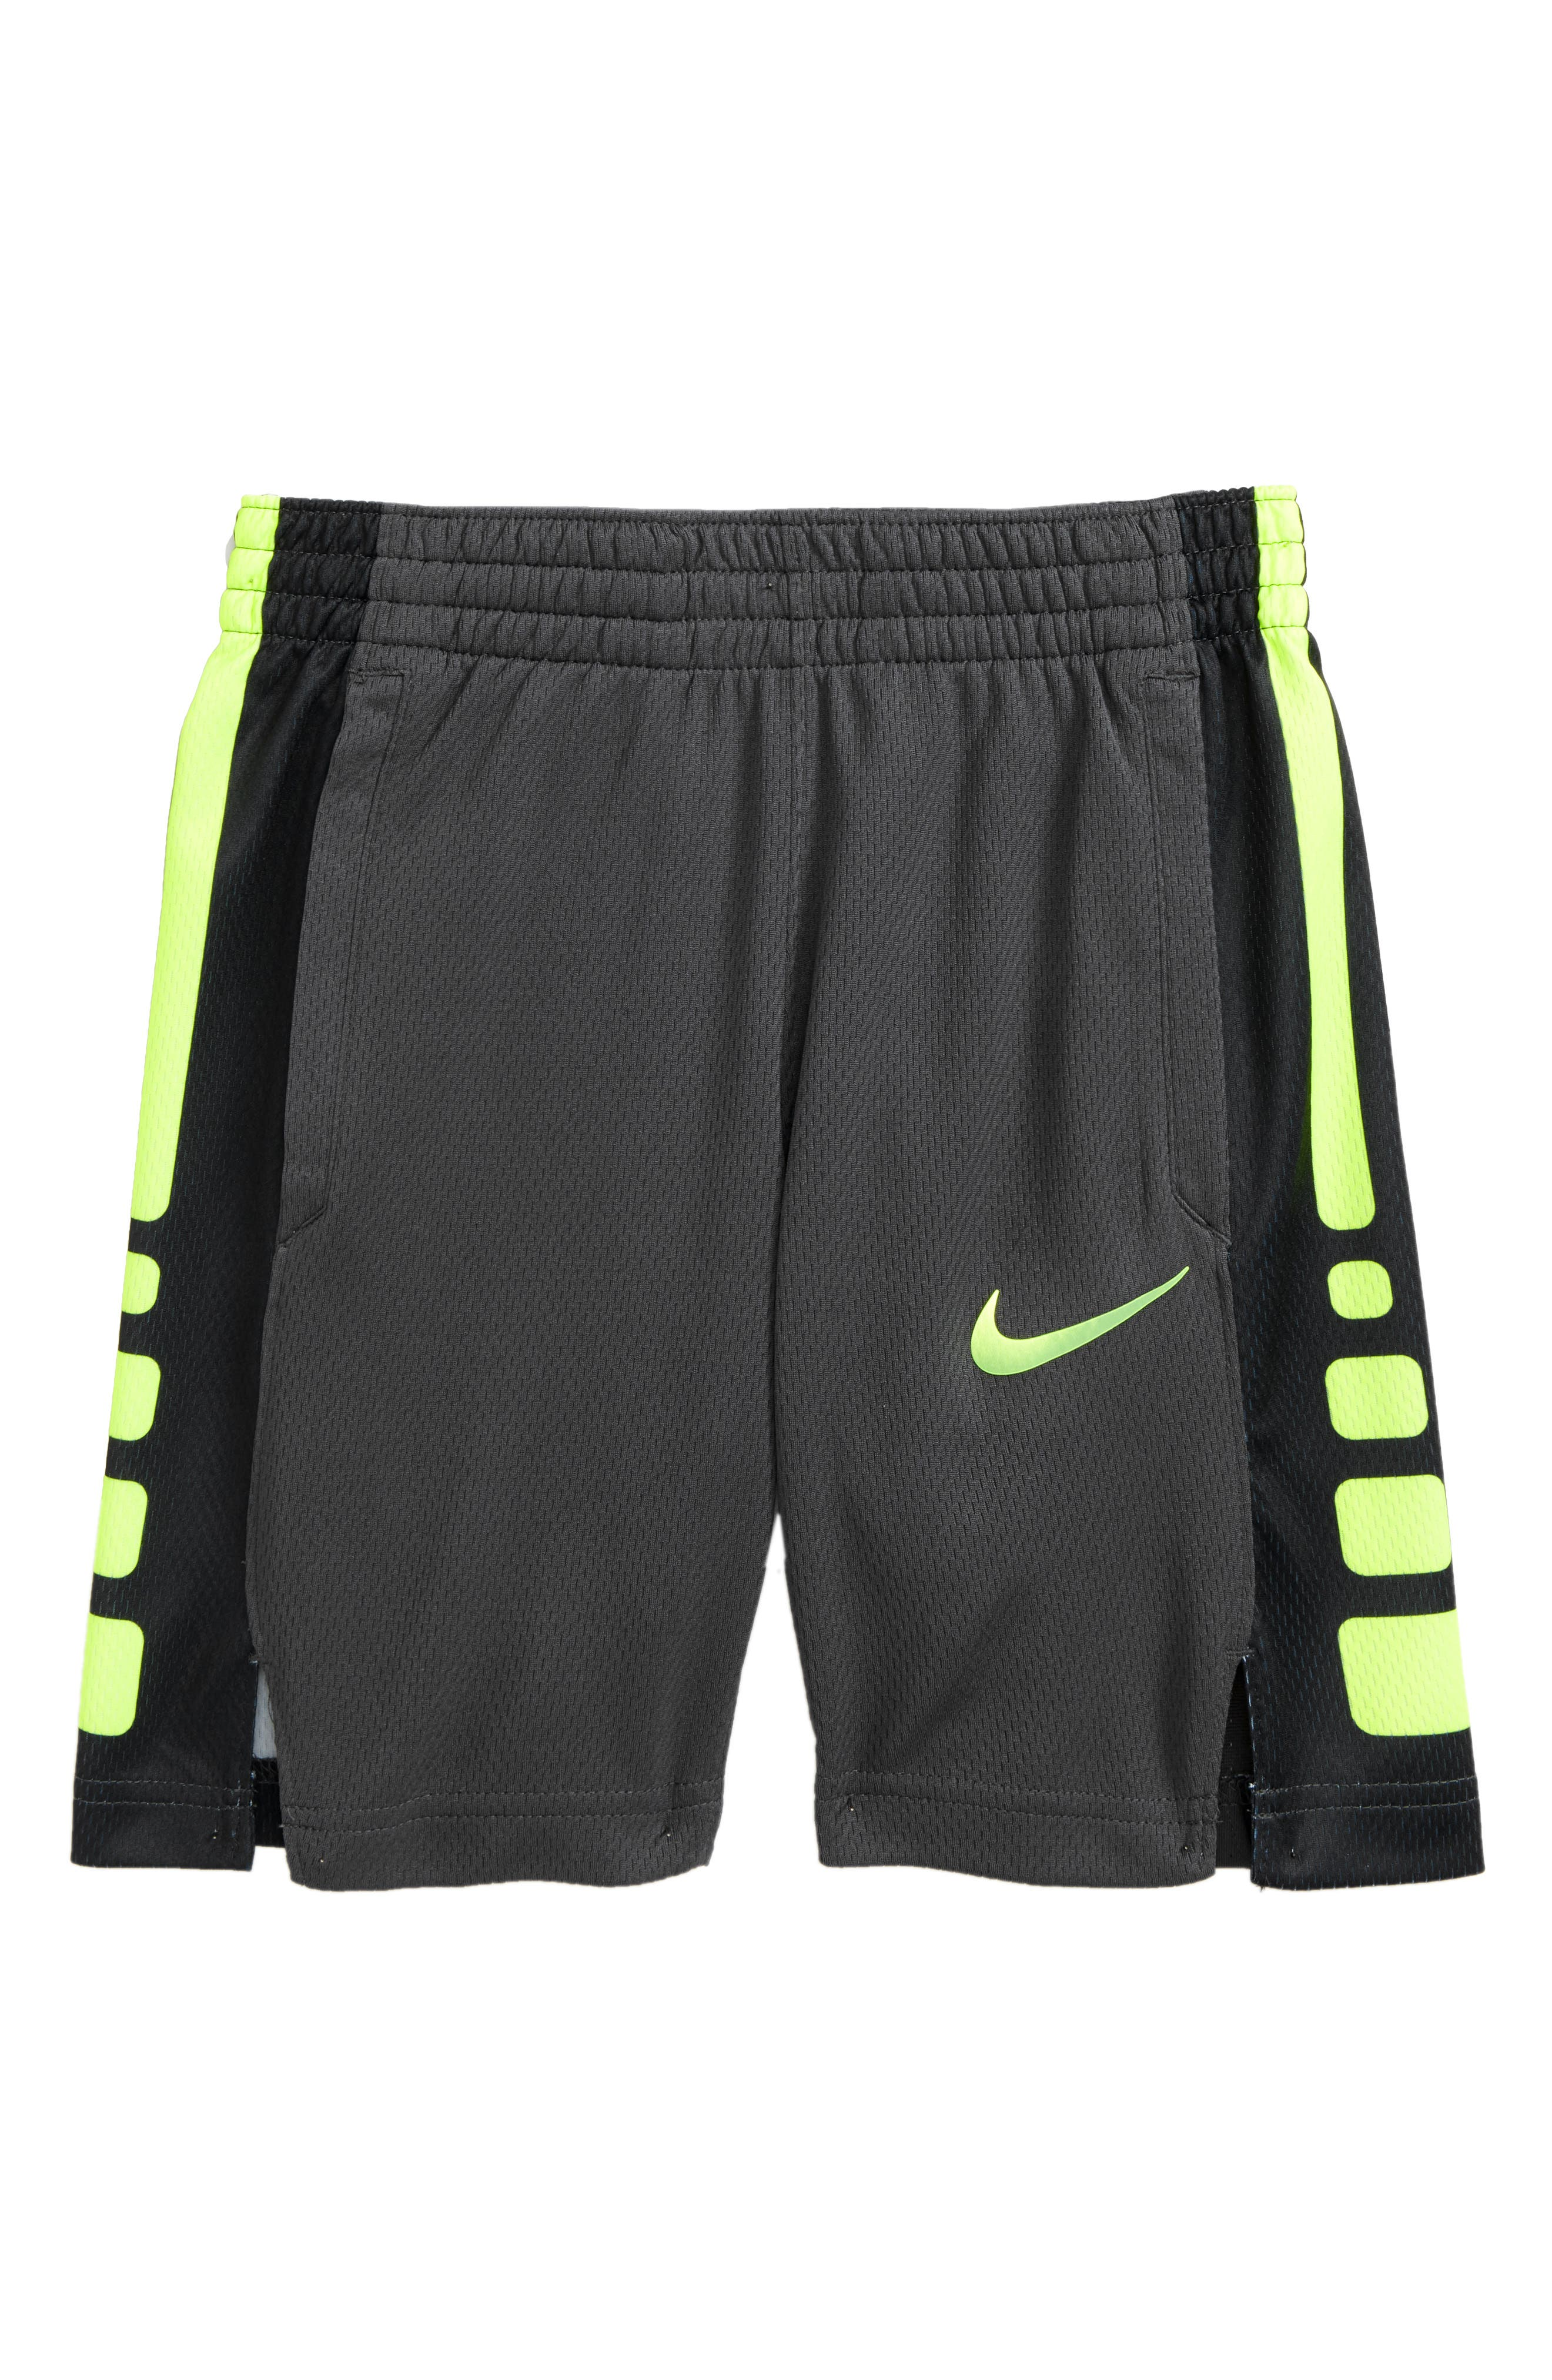 Dry Elite Basketball Shorts,                             Main thumbnail 6, color,